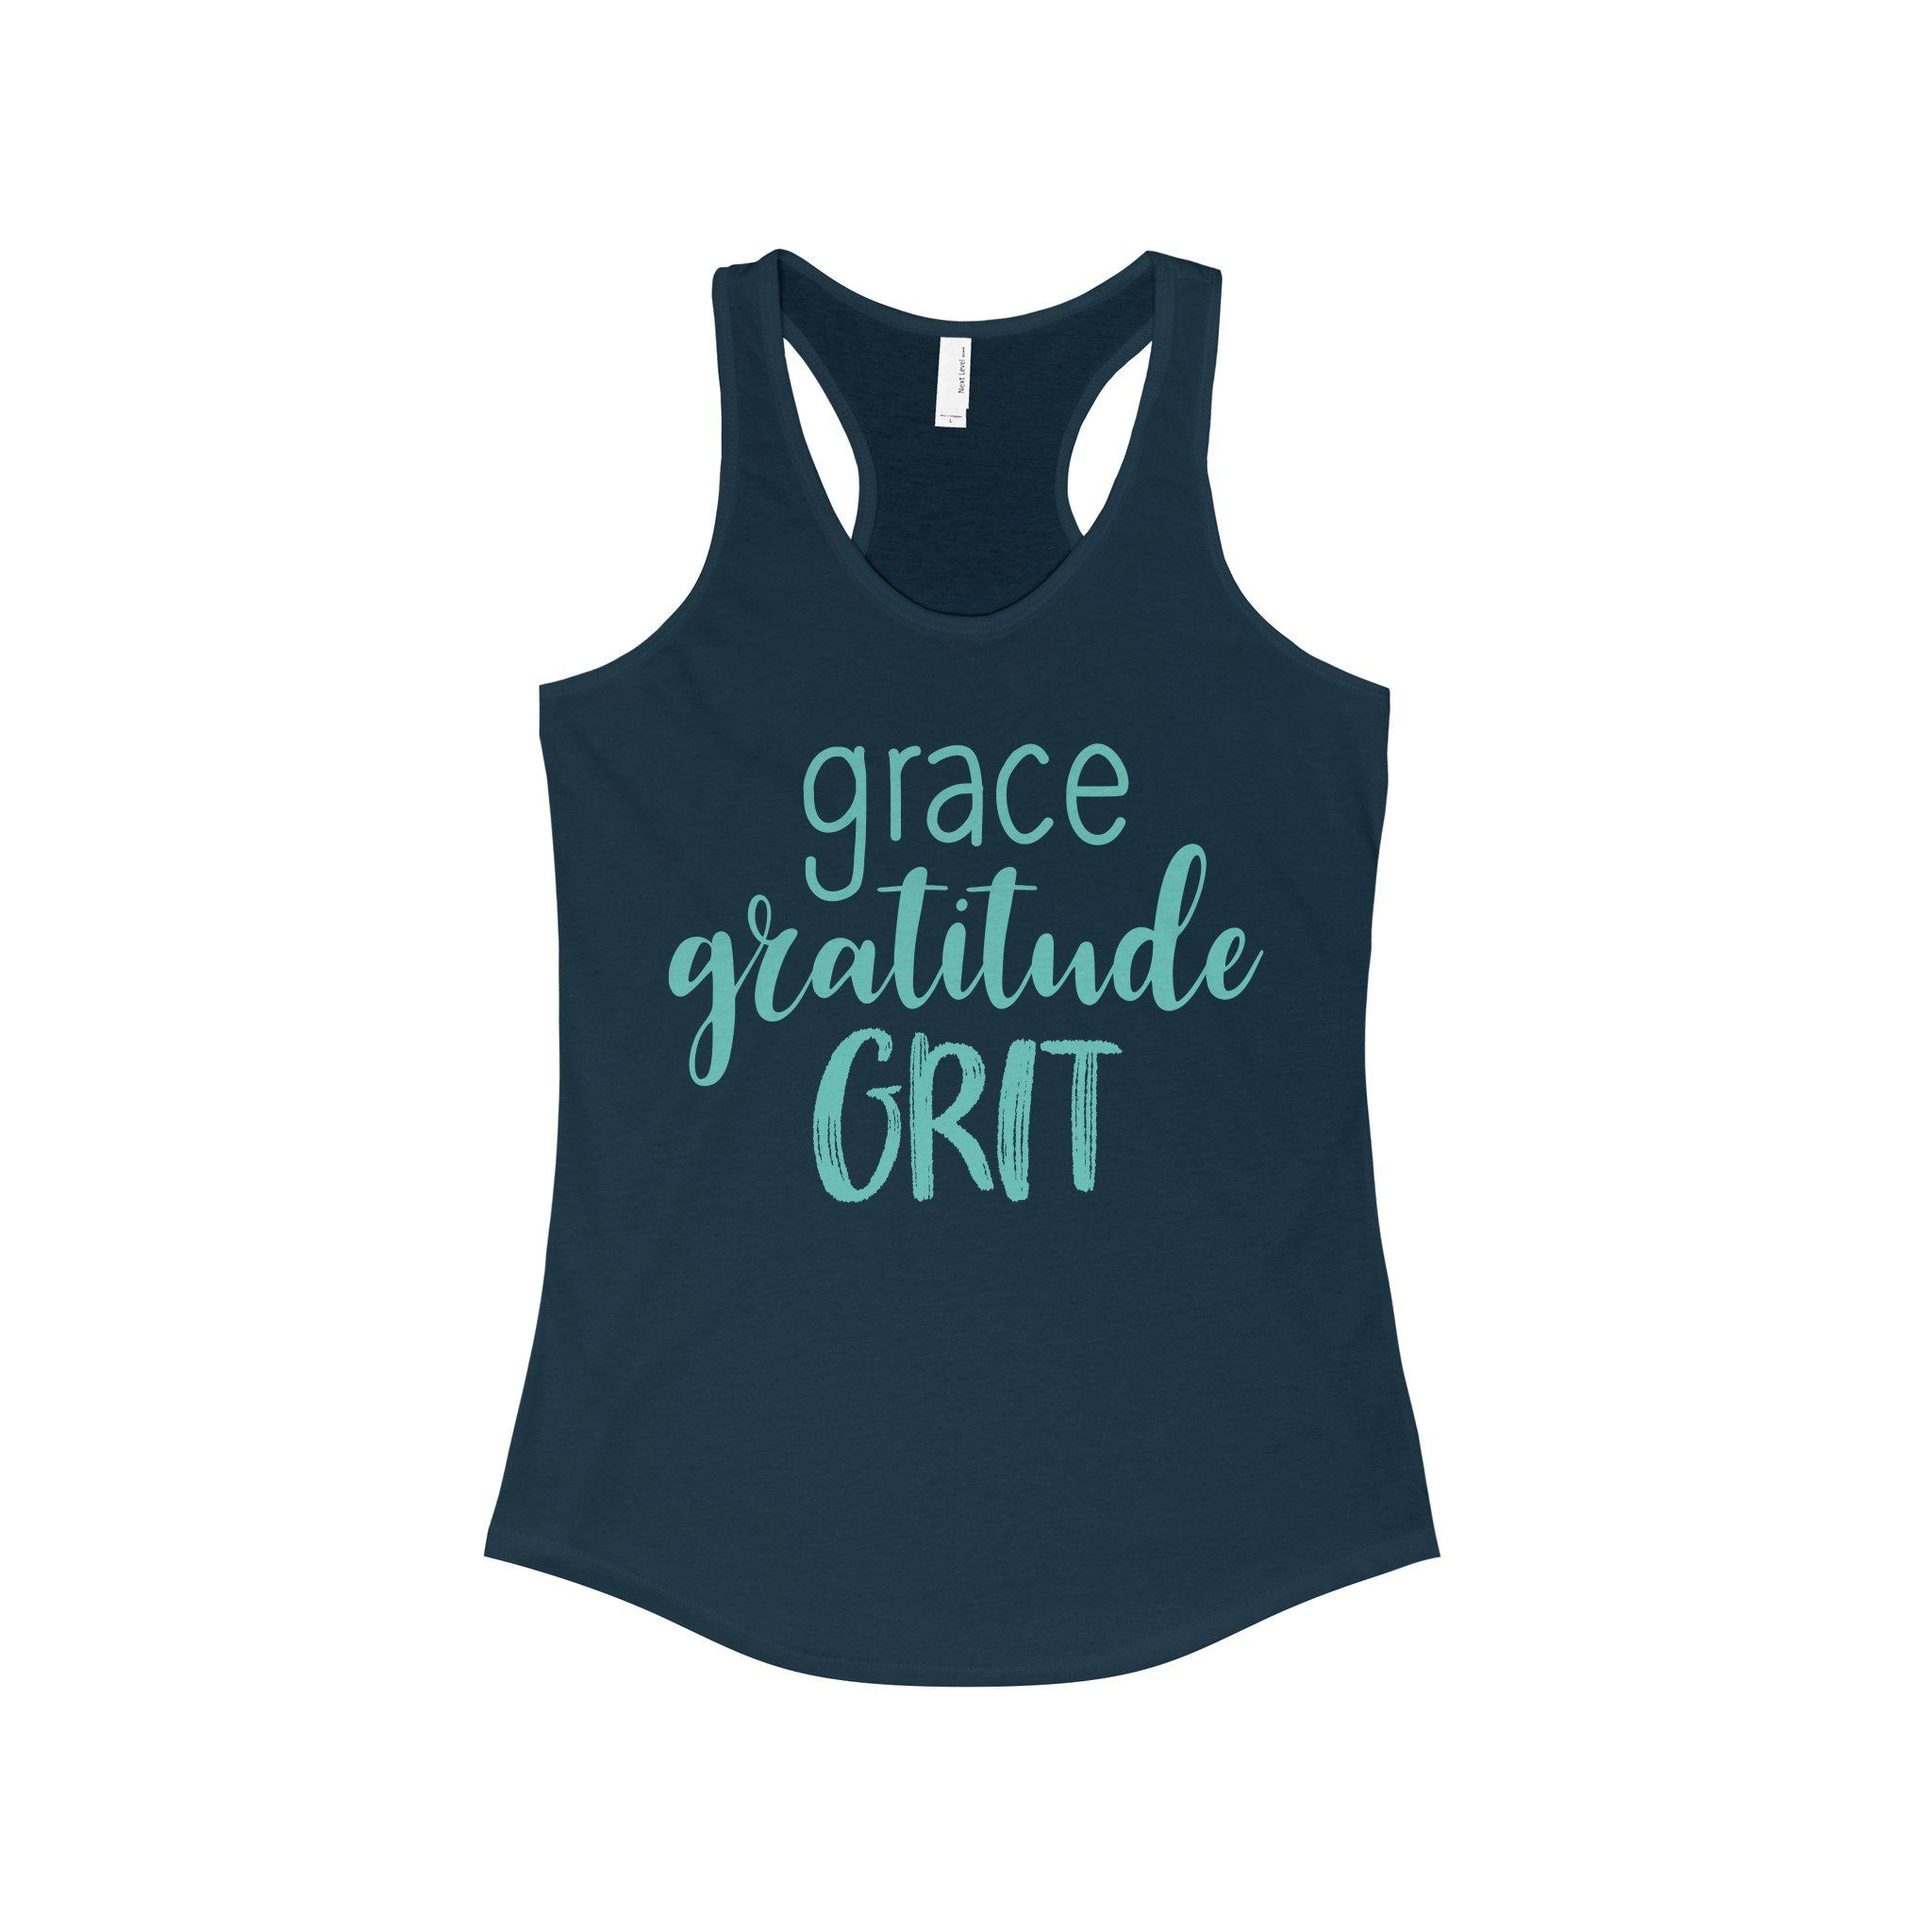 Grace Gratitude Grit - The Ideal Racerback Tank